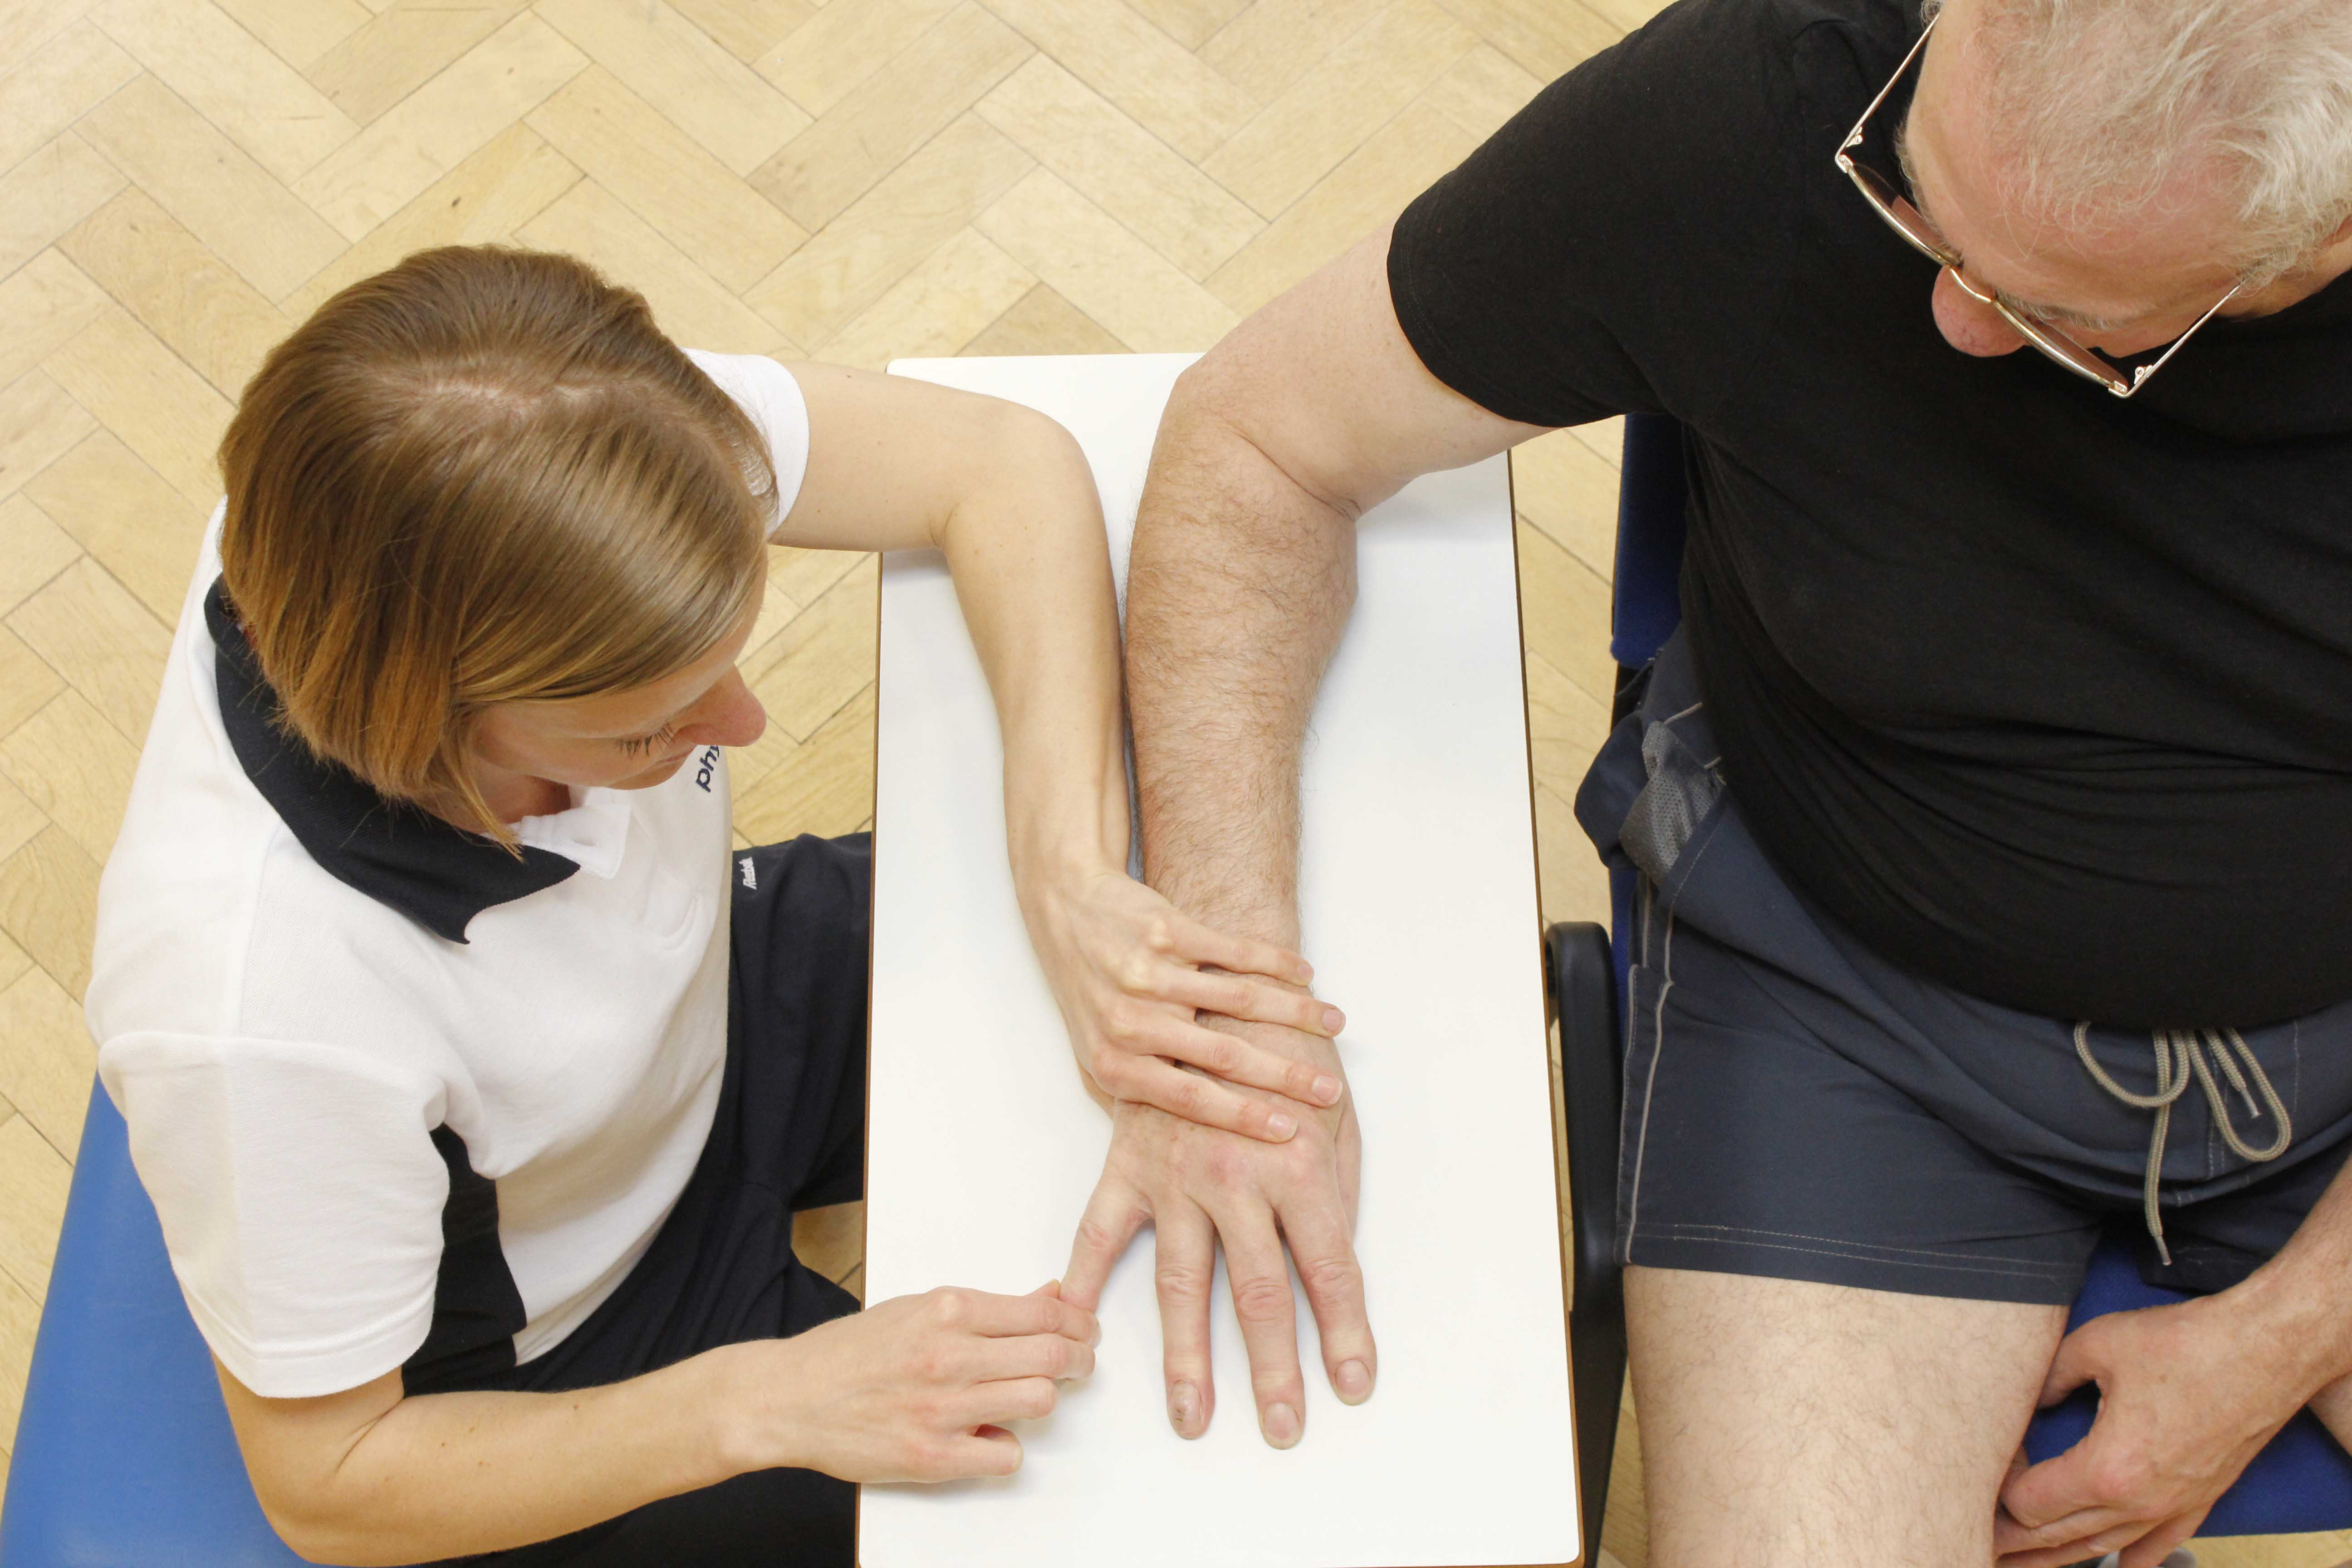 Specilaist neurological physiotherapist using massage and mobilisation to address abnormal sensation